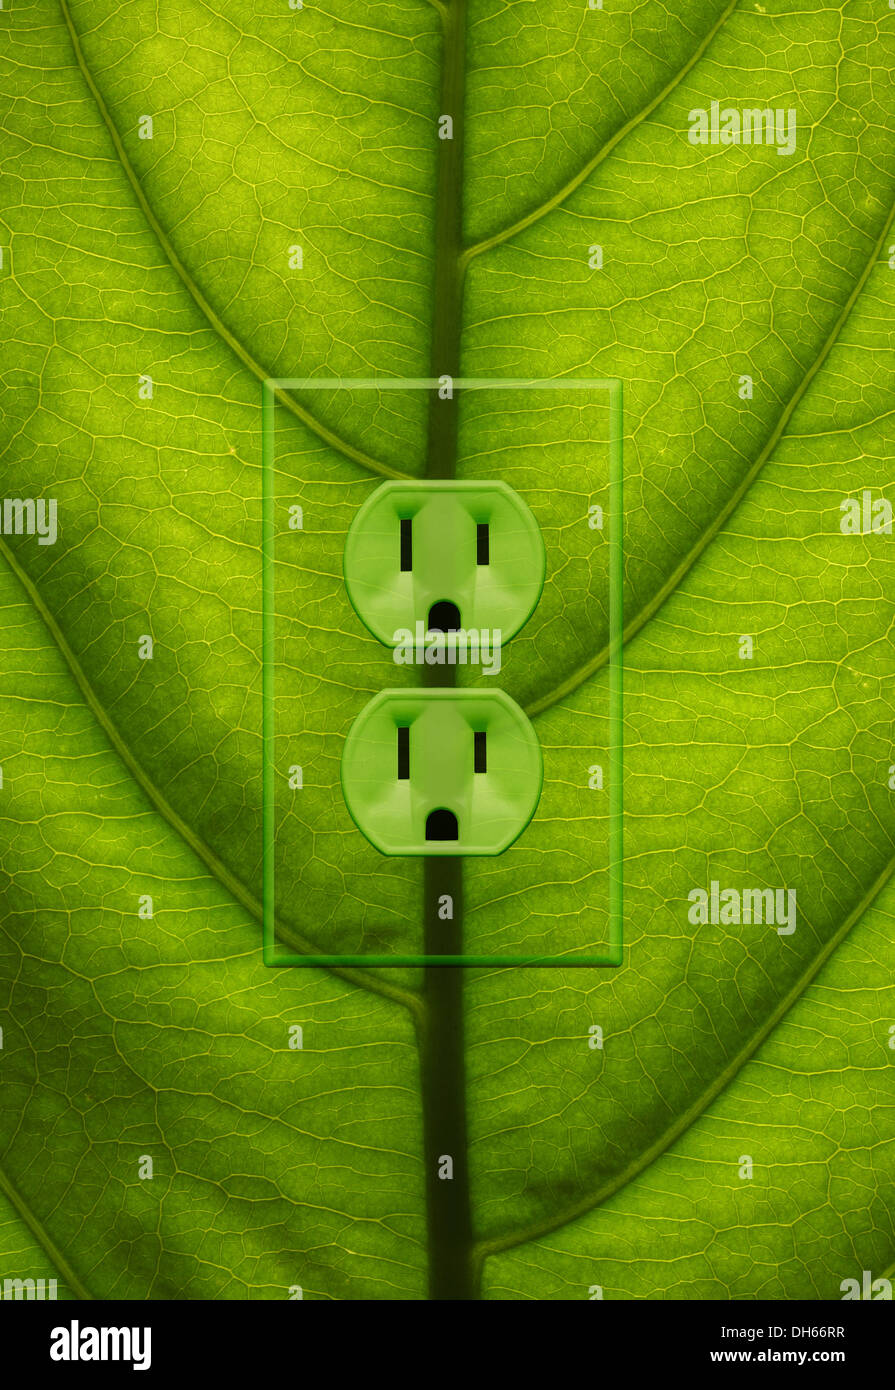 Close-up of a green plant leaf with green colored electrical outlets added. - Stock Image